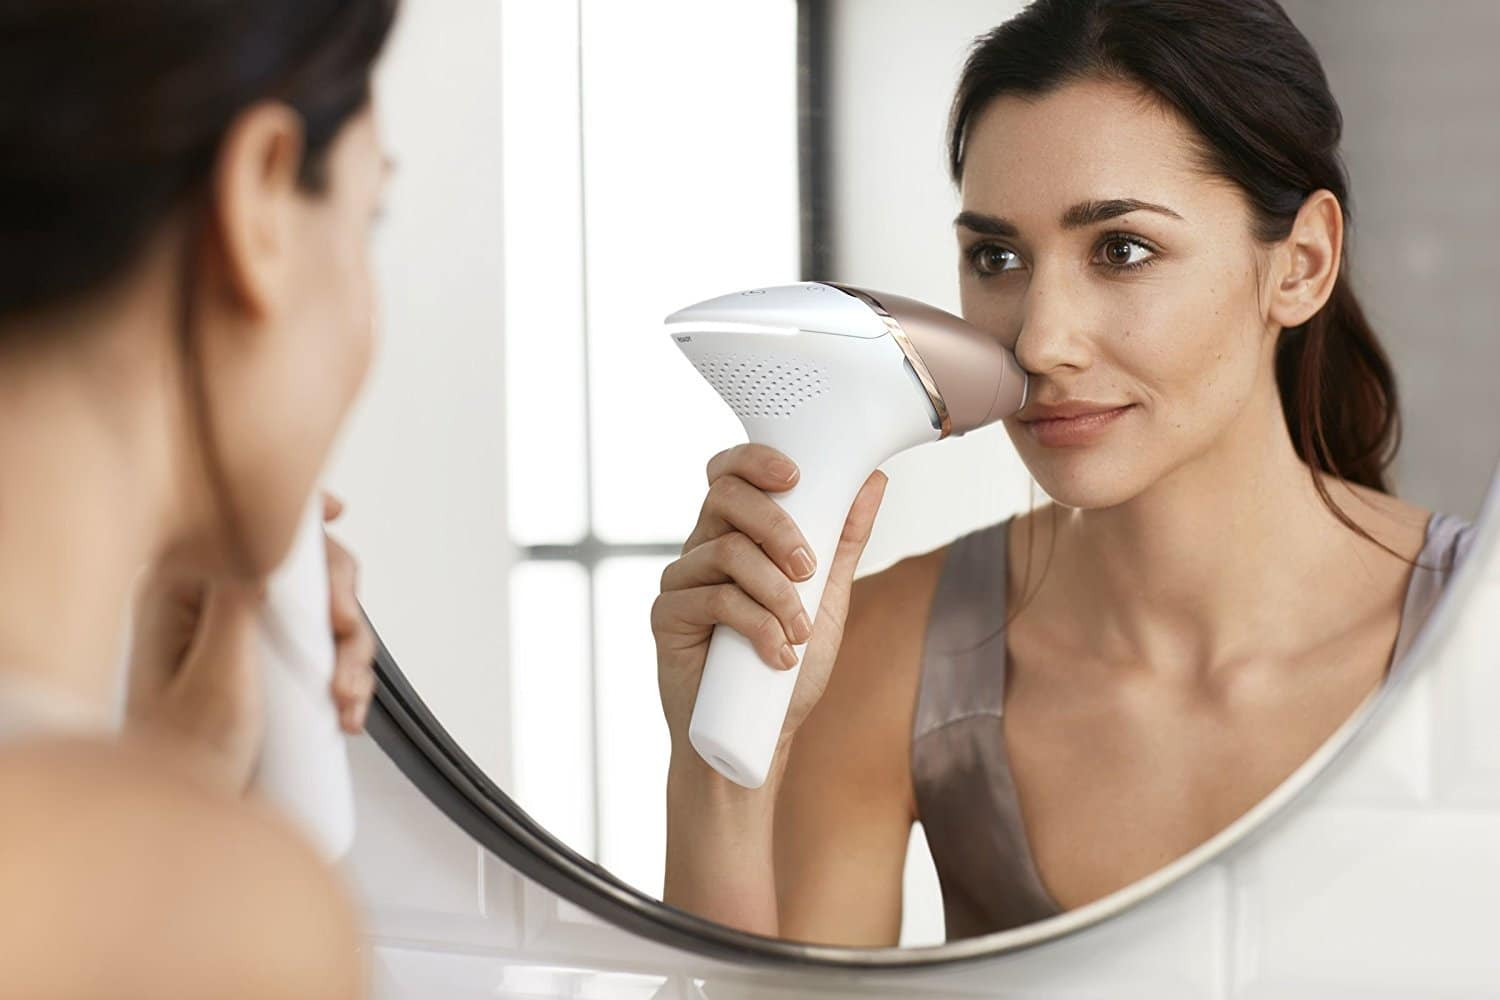 Philips Lumea IPL Hair Removal Systems (Which Is The Best?)